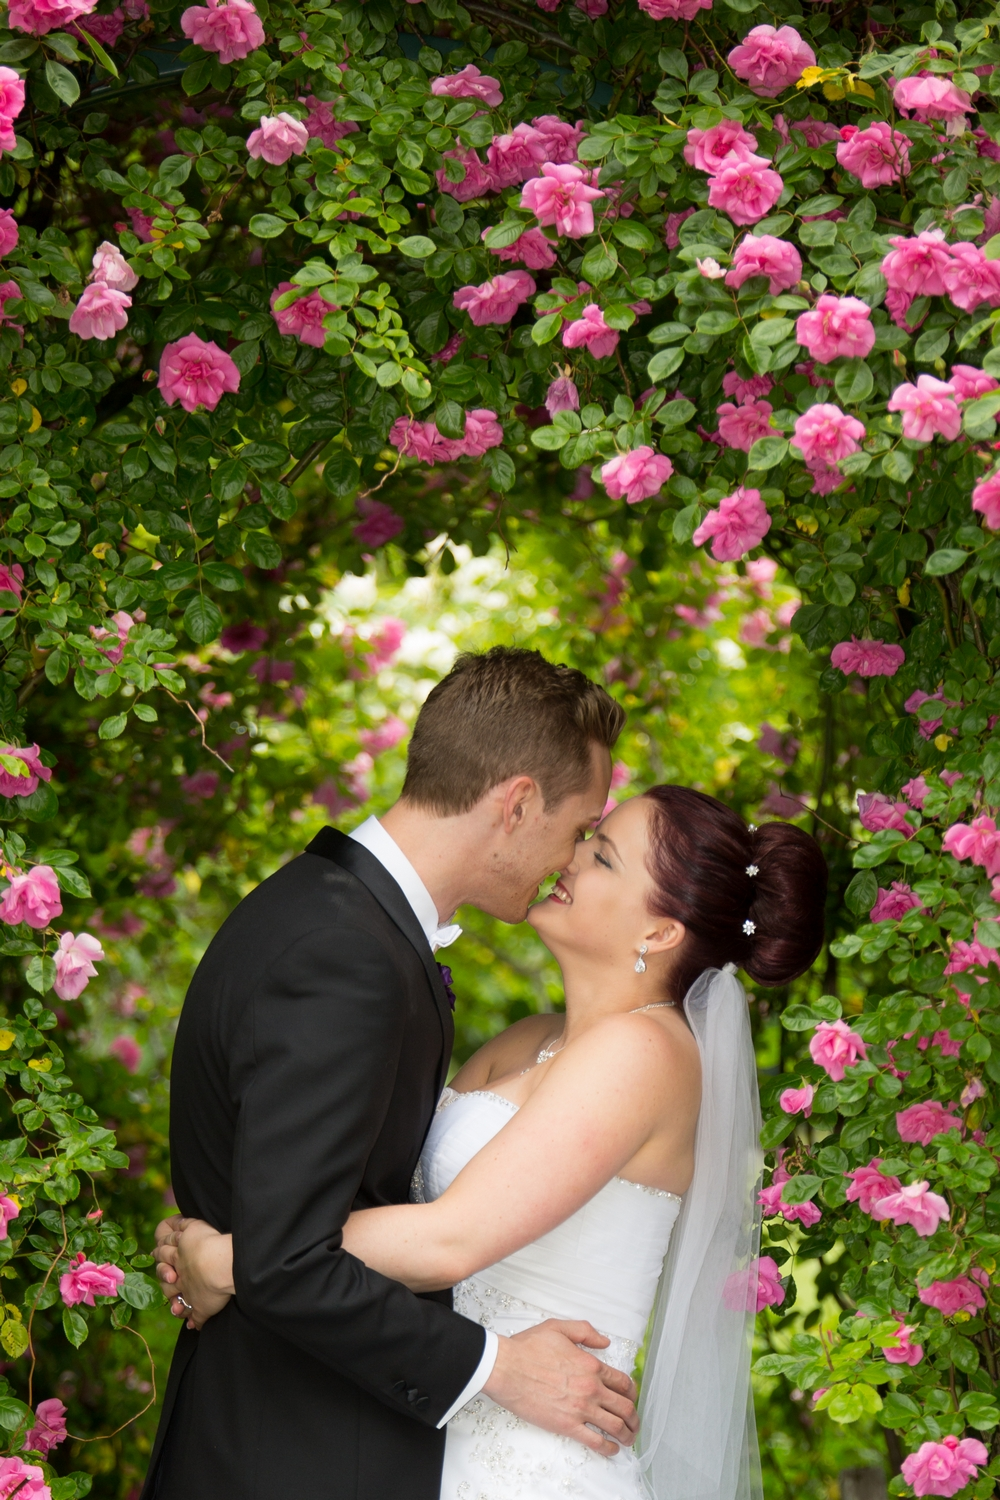 kissing-under-the-roses.jpg